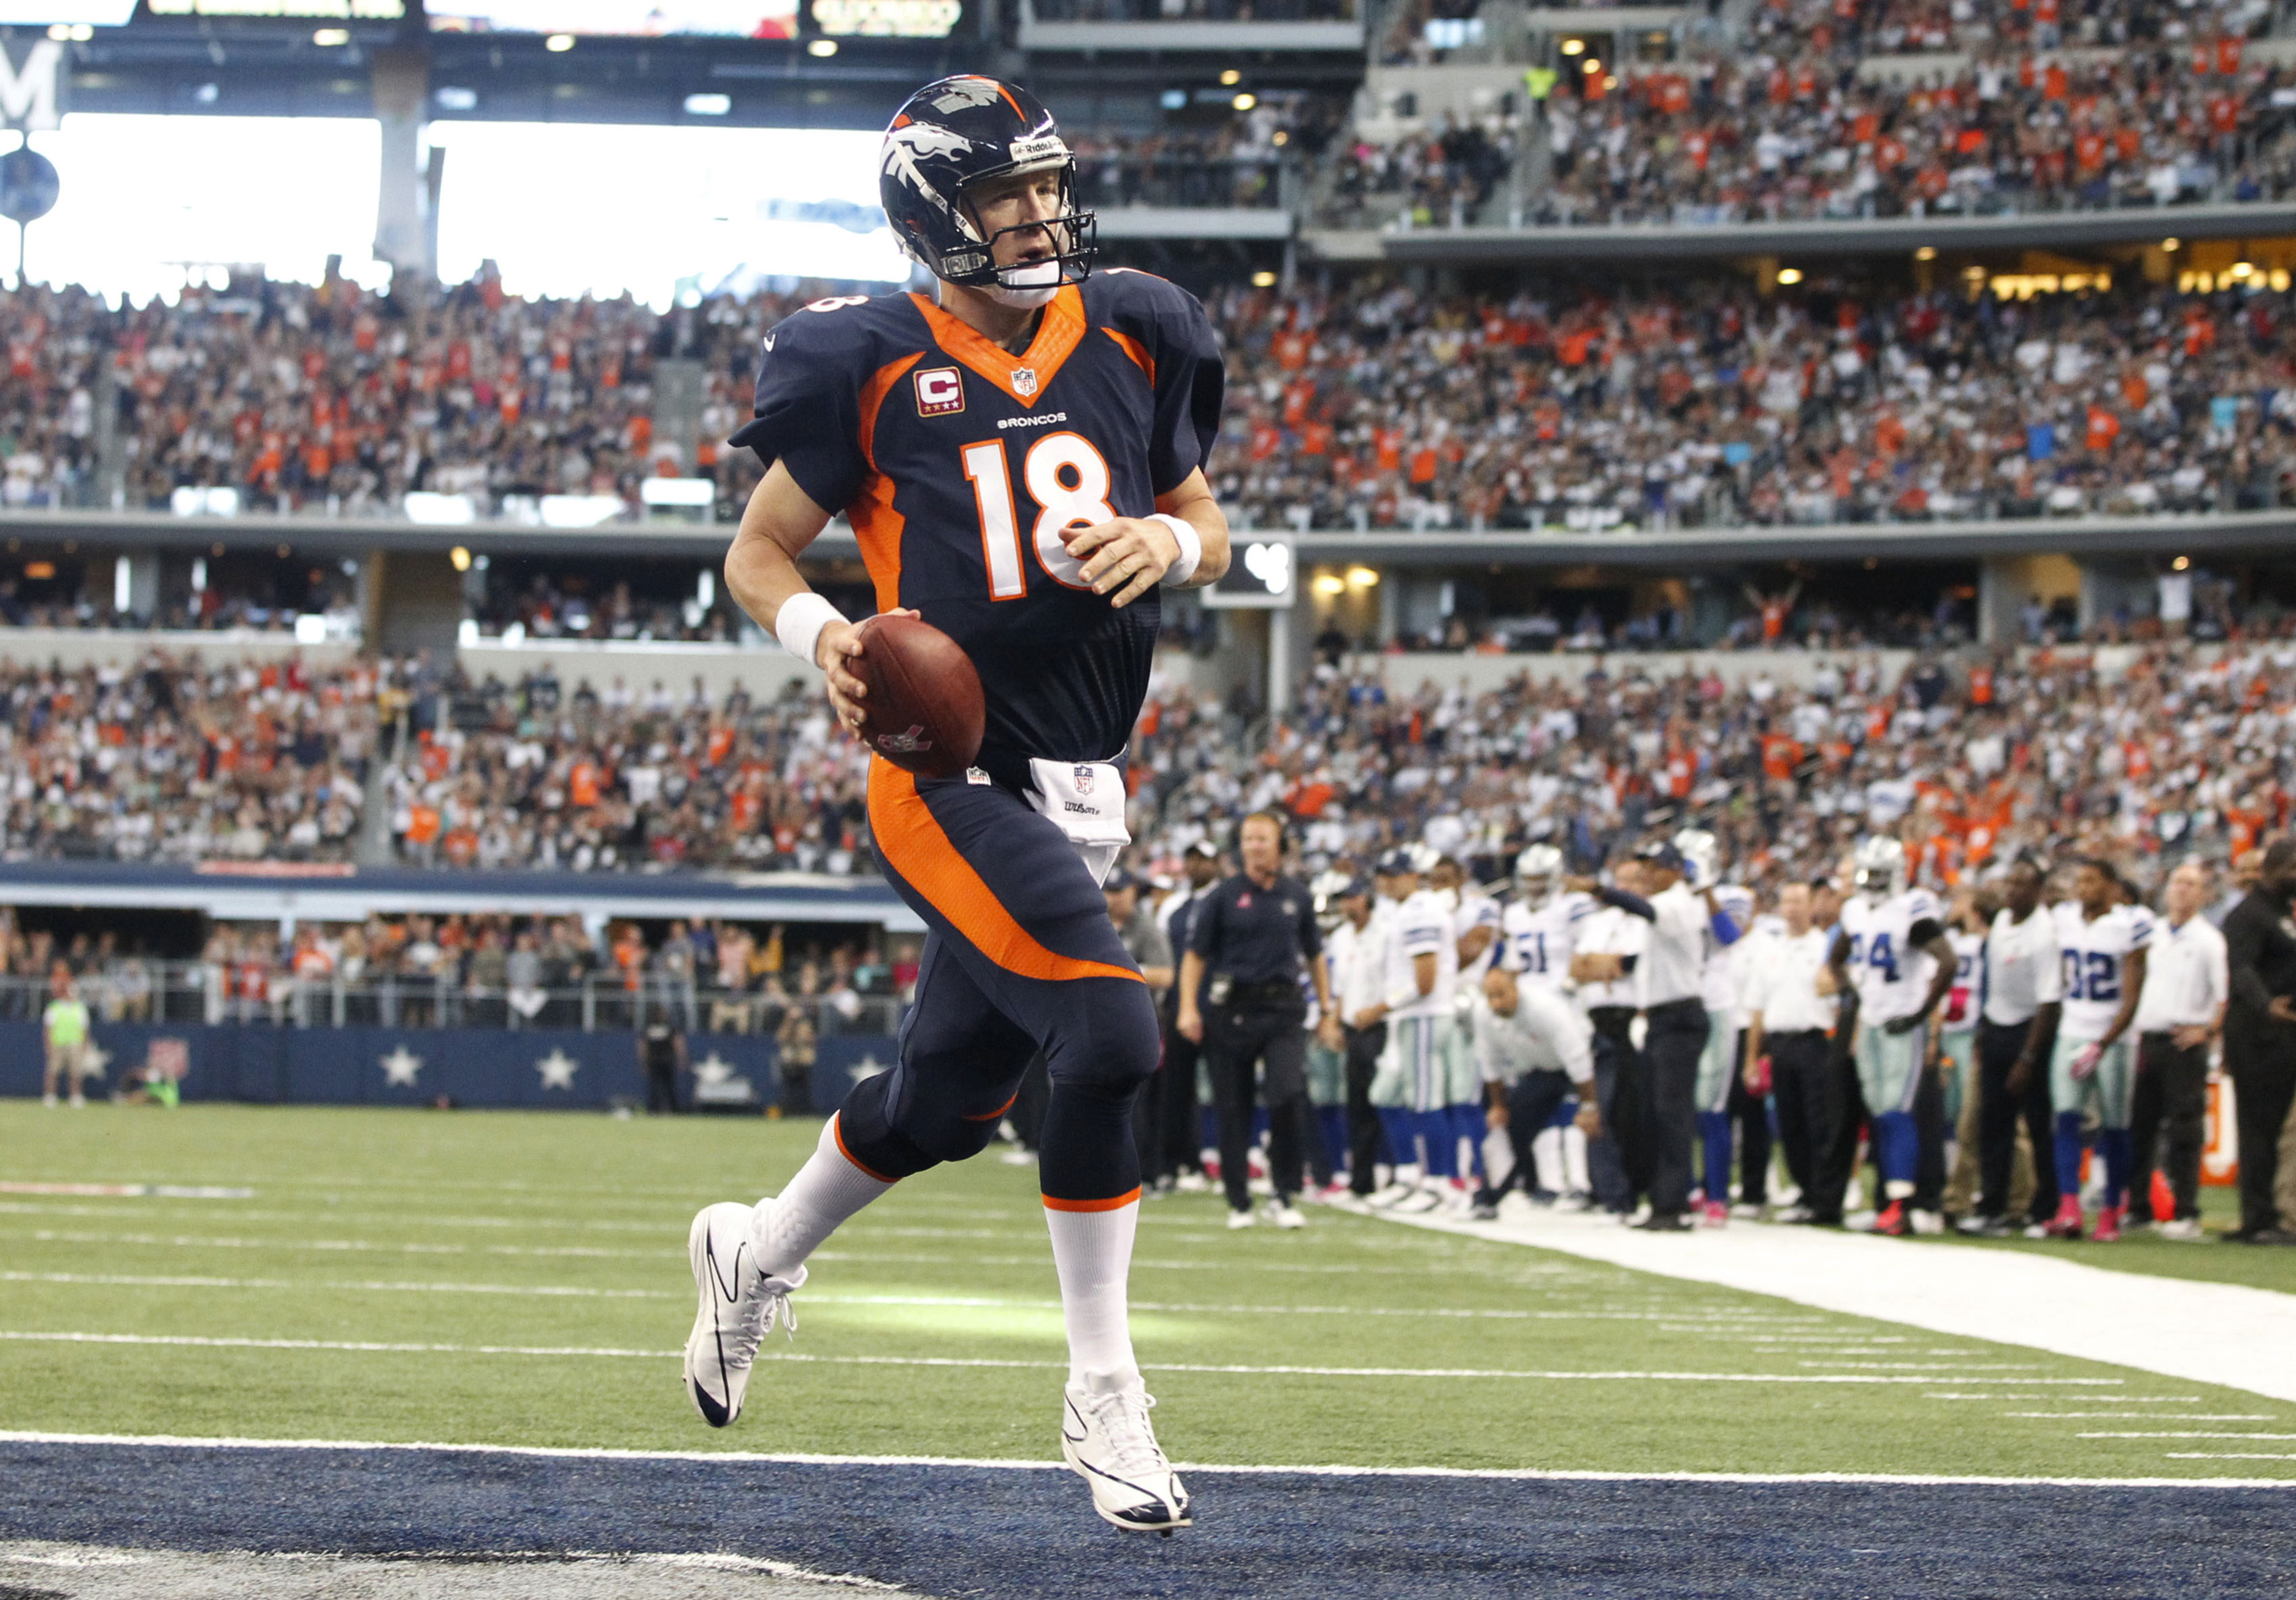 Peyton Manning leads the Broncos to a record-breaking start